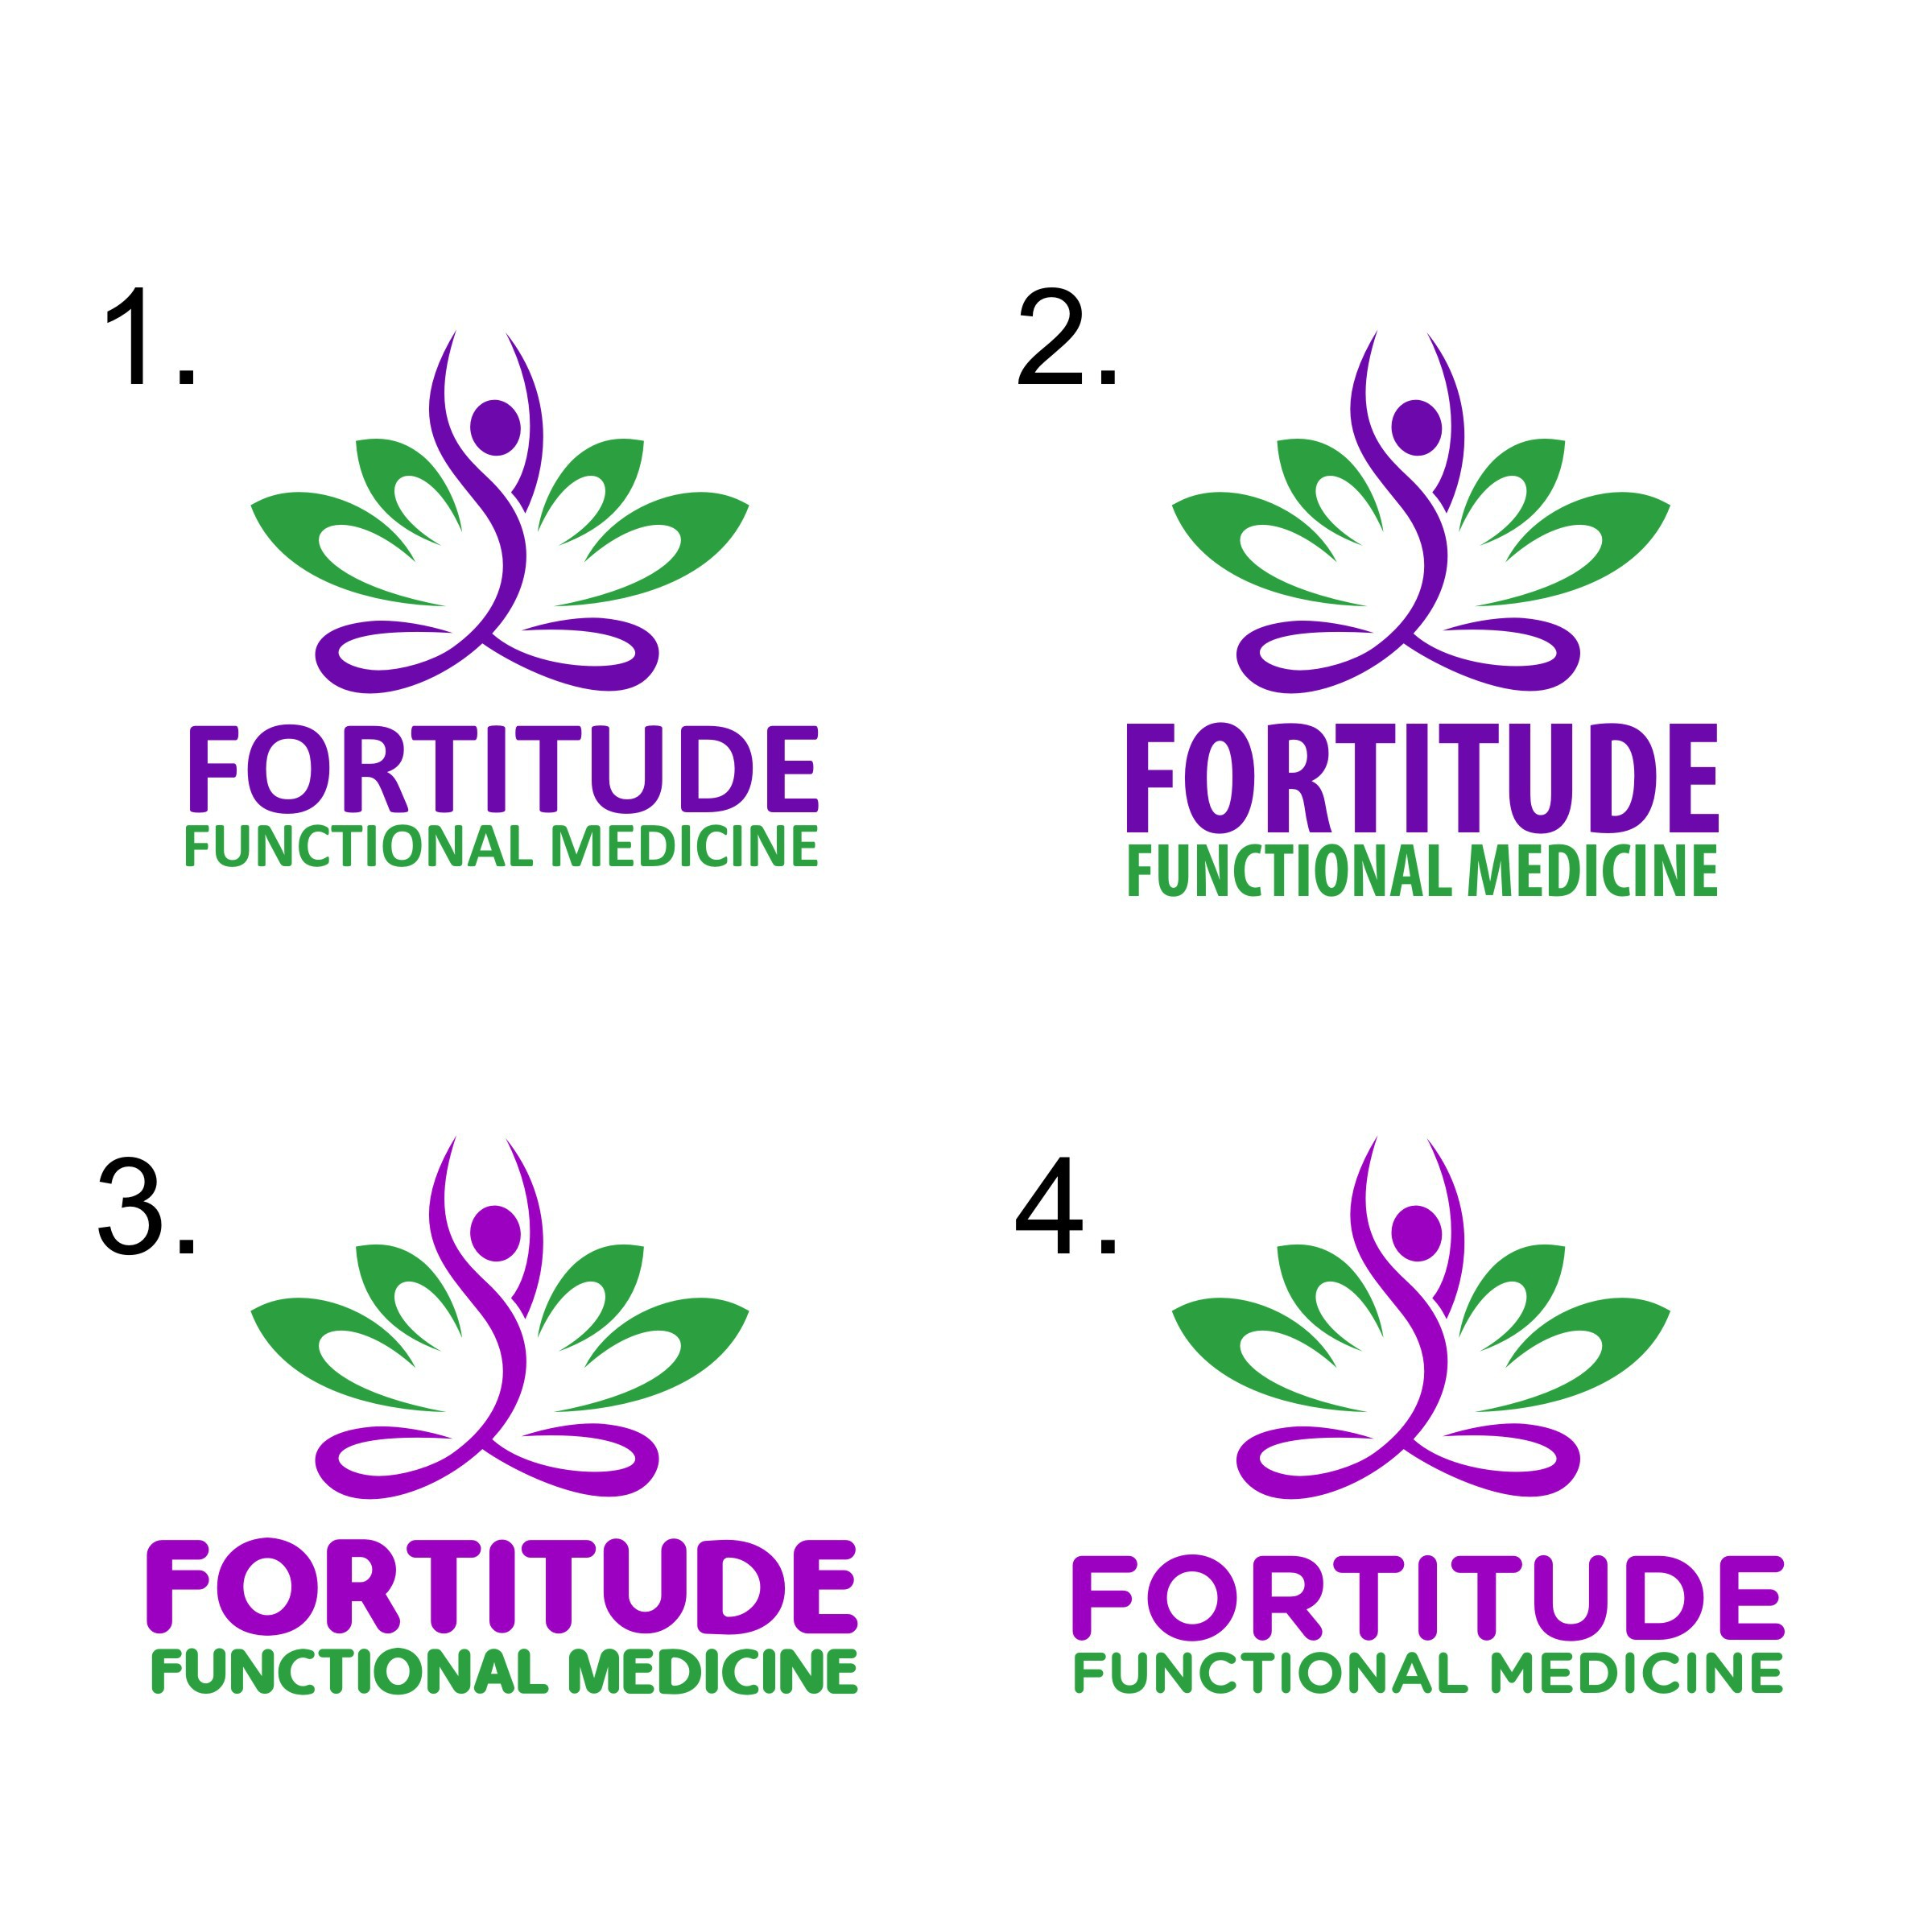 Create a retro vintage or signature logo for Fortitude Functional Medicine